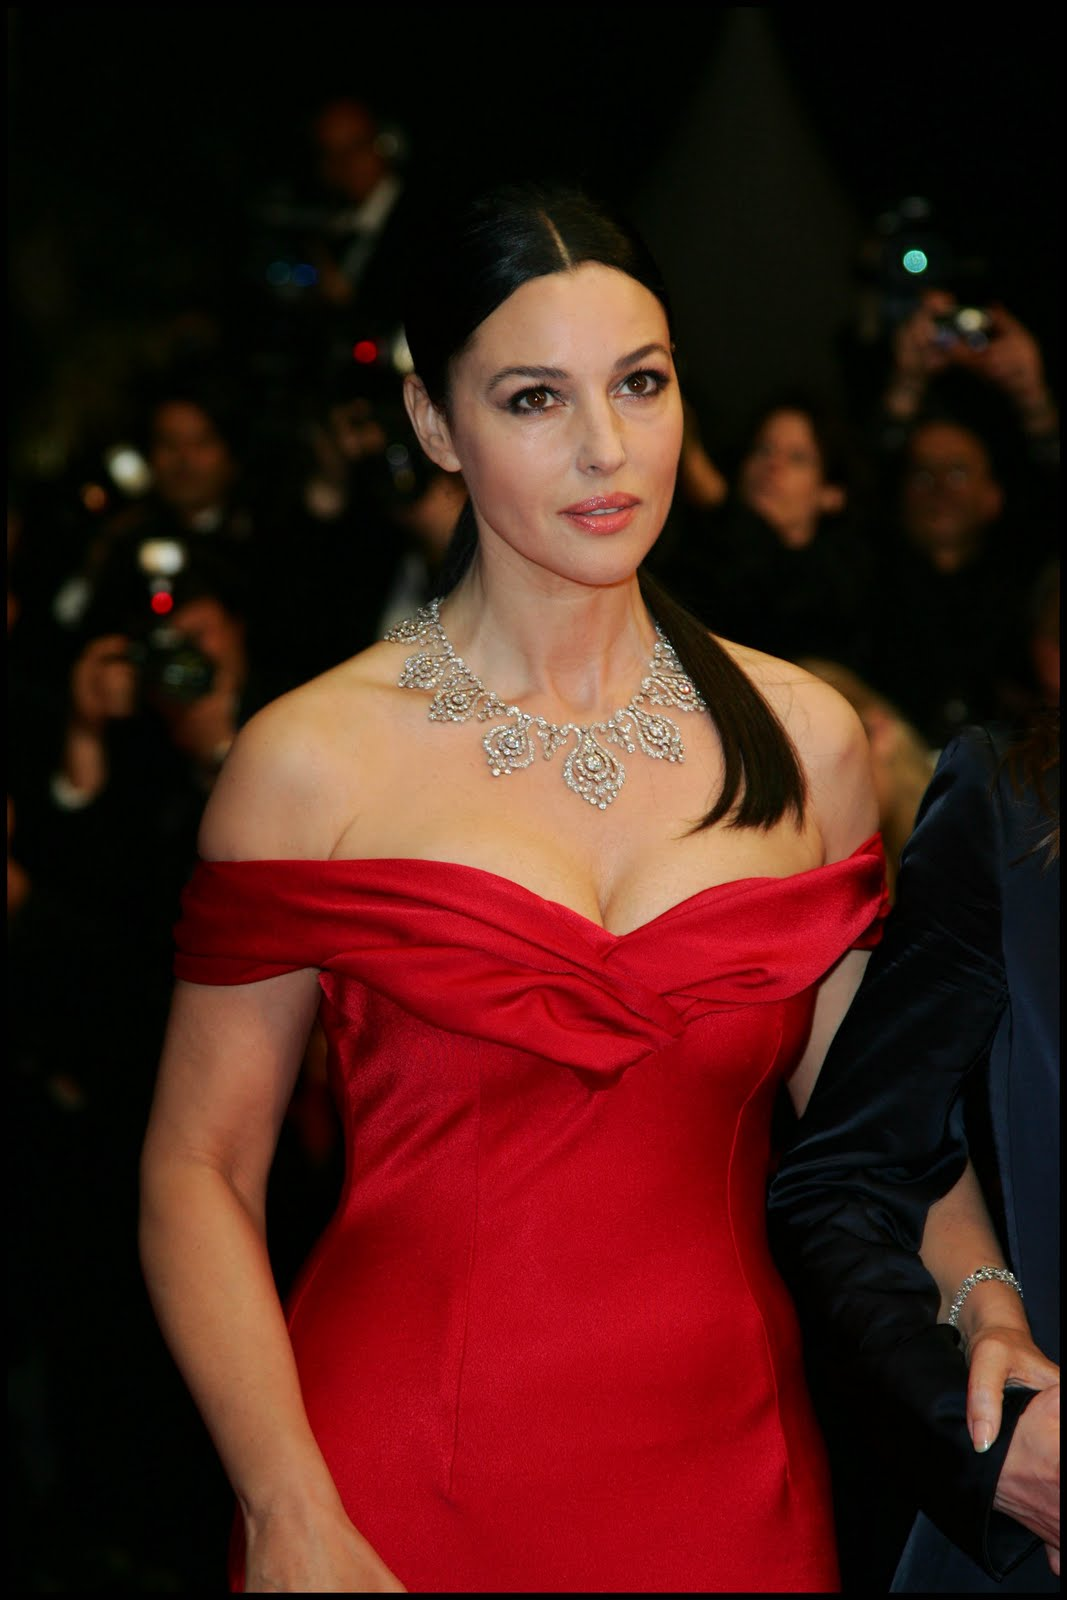 http://3.bp.blogspot.com/_JUw2aRvPUwc/Swp79cO16gI/AAAAAAAAMbQ/4wPGOqeAlGI/s1600/Monica+Bellucci+photo+5.jpg